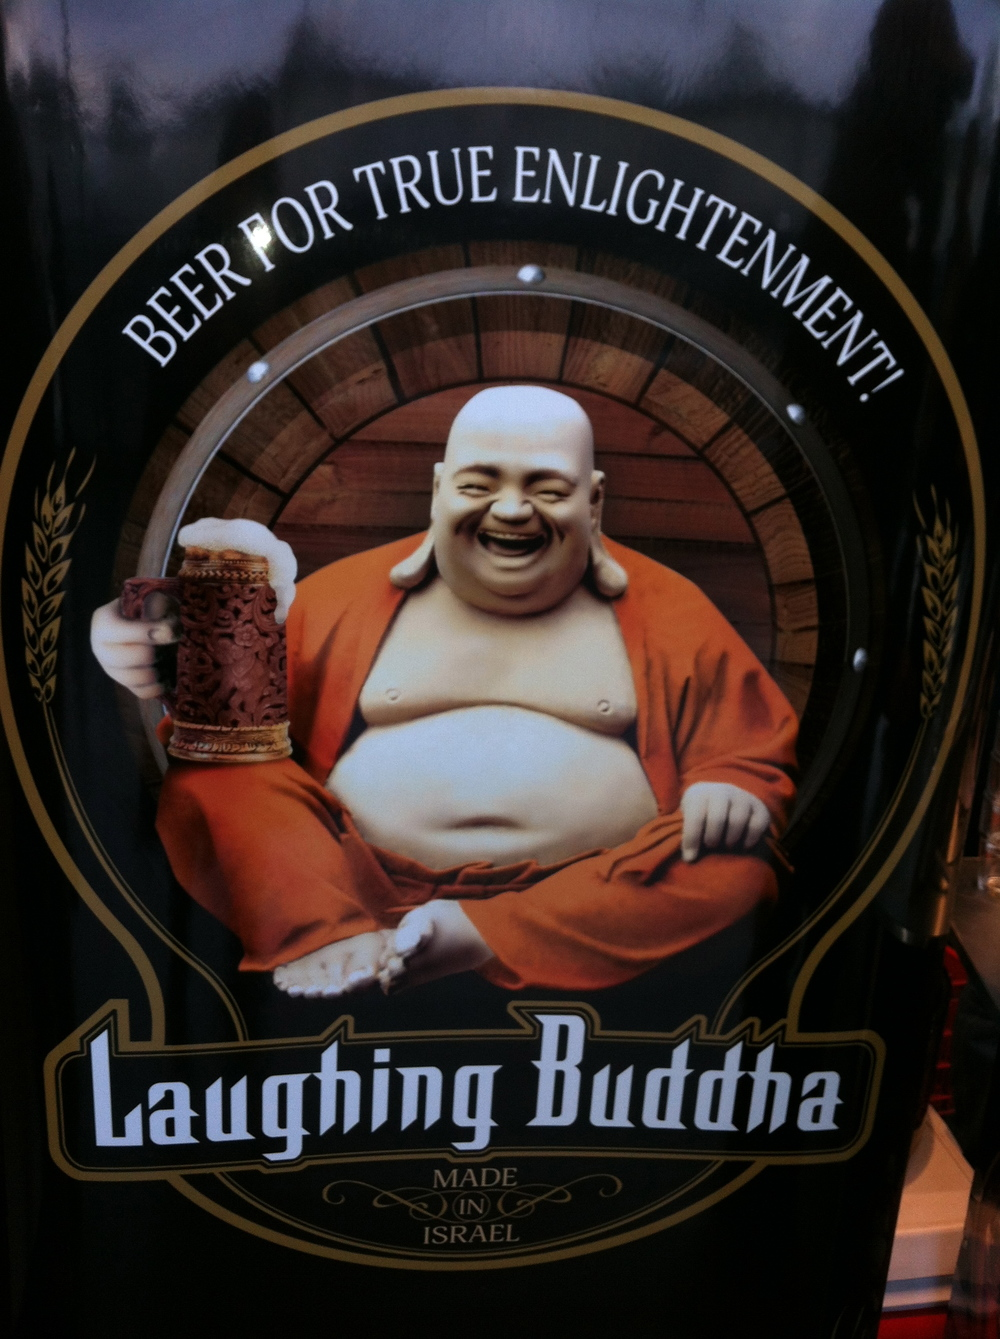 Close-up of the Laughing Buddha Beer